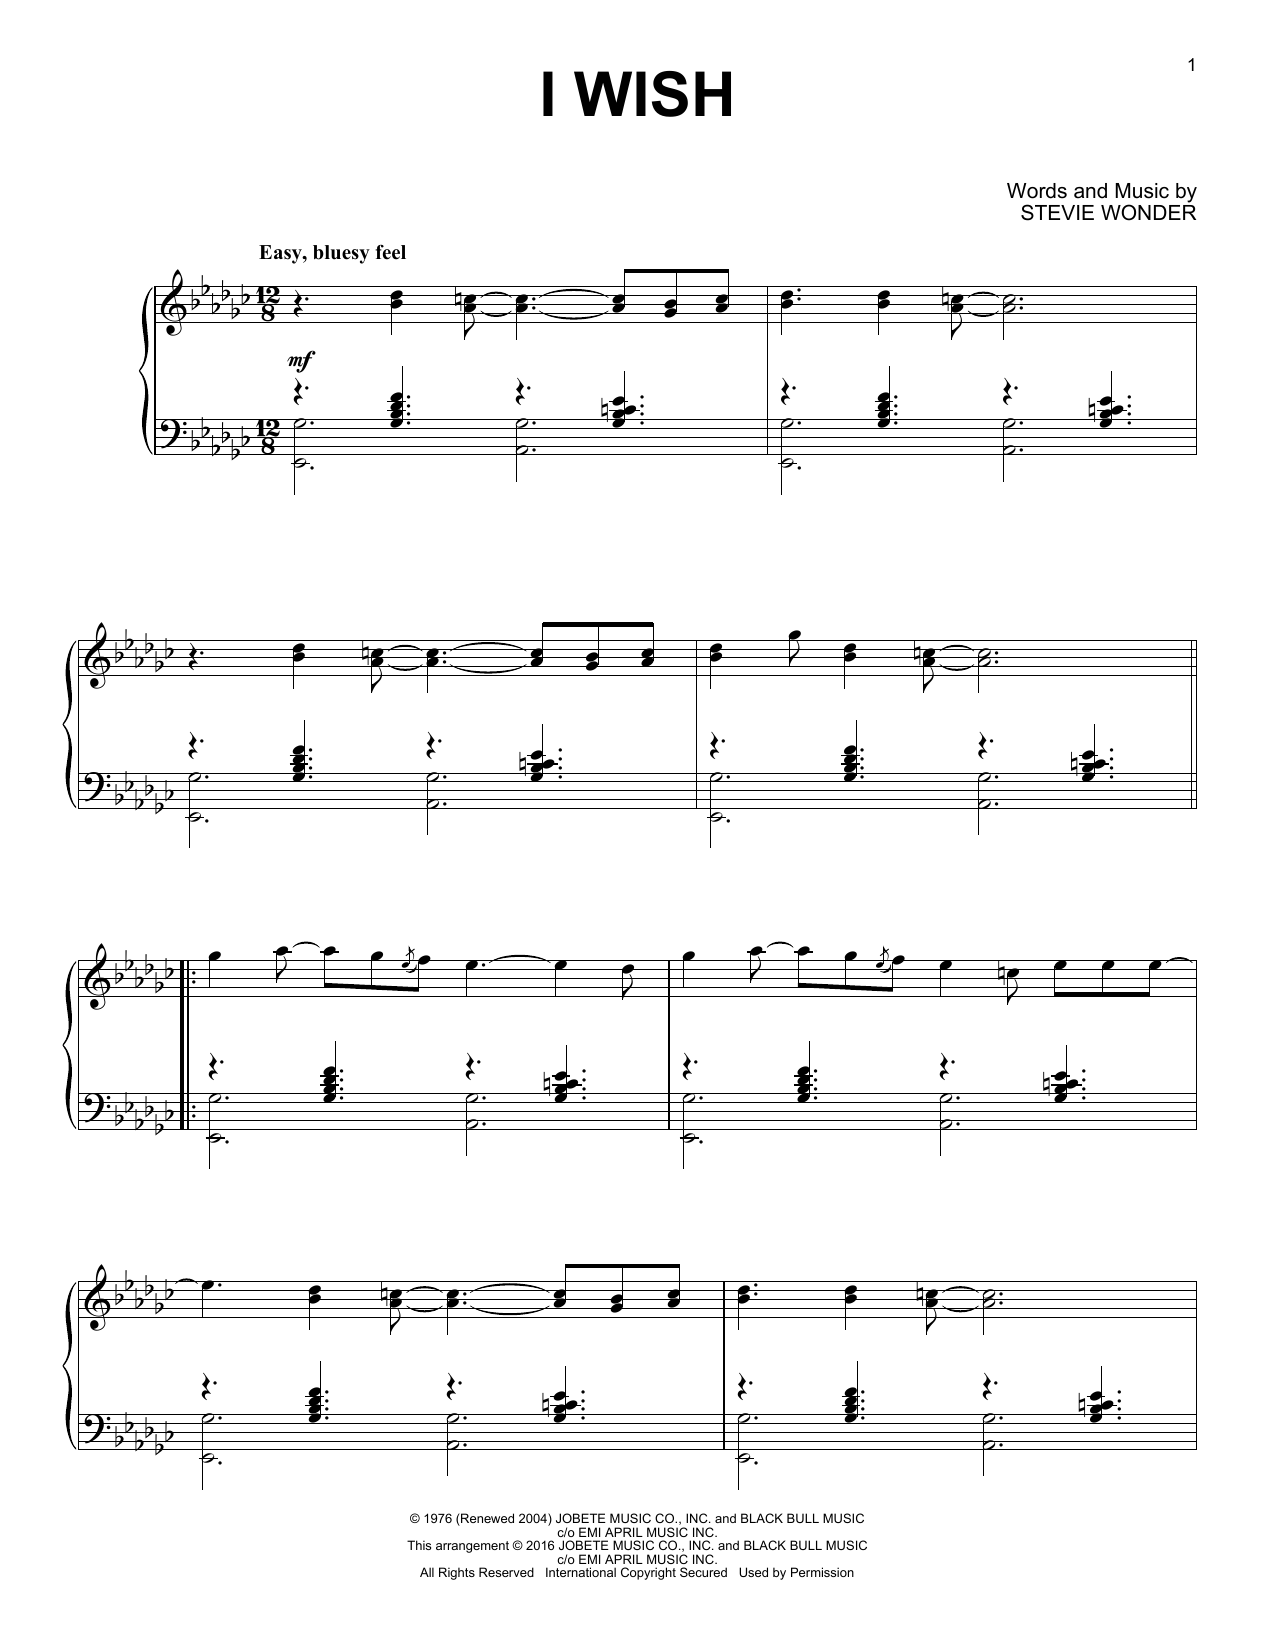 Stevie Wonder 'I Wish' Sheet Music Notes, Chords | Download Printable Piano  - SKU: 162694